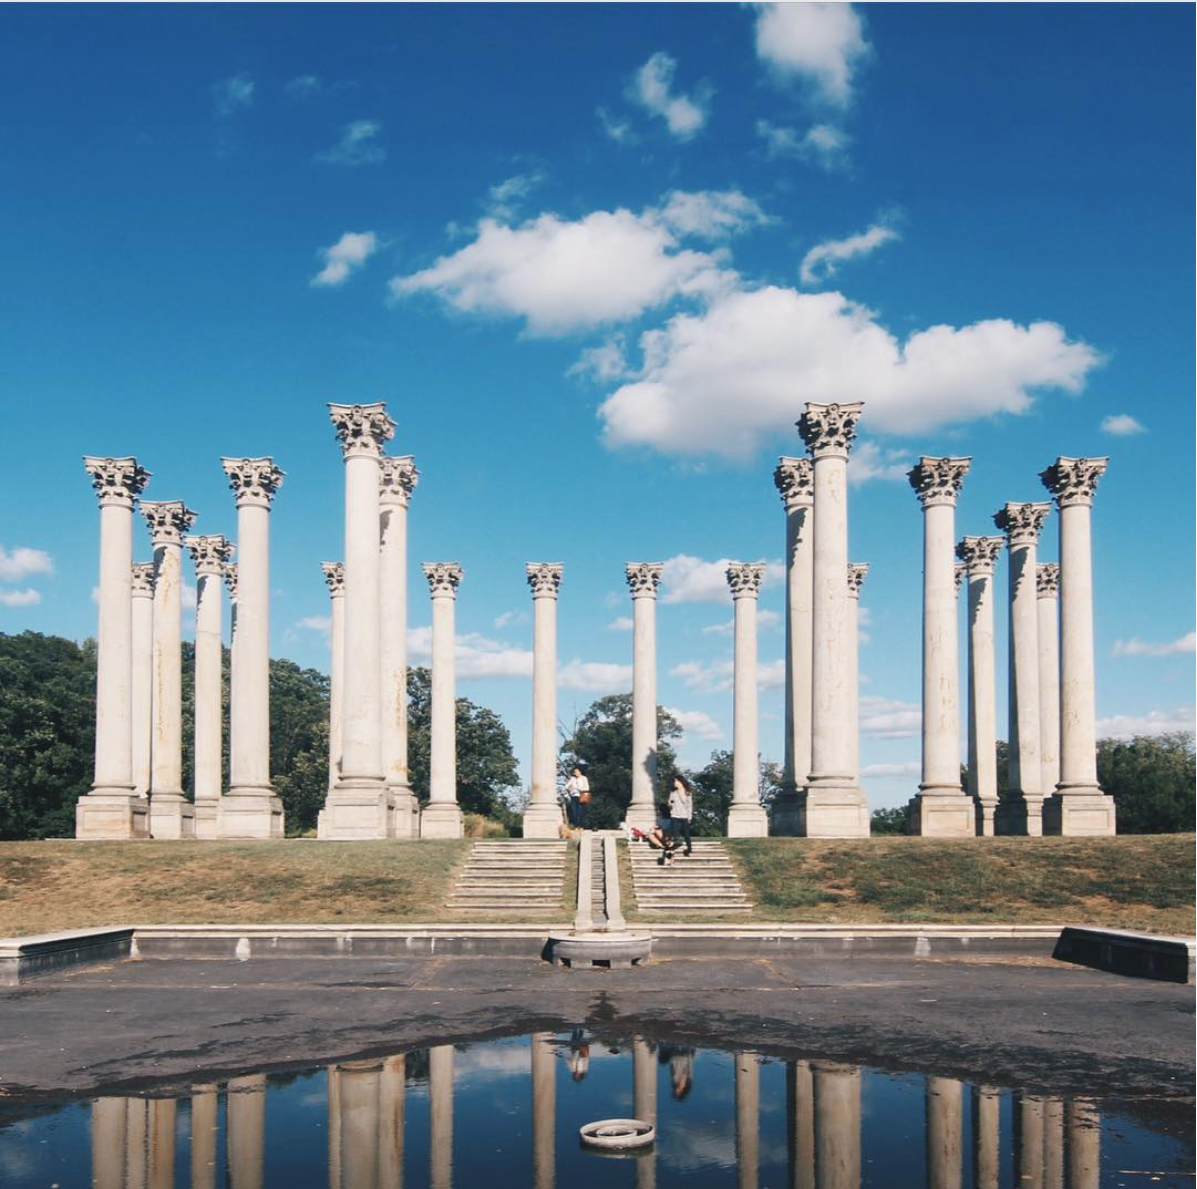 We love how the reflection showcases the Capitol Columns. (Image via @zofeeagenota)